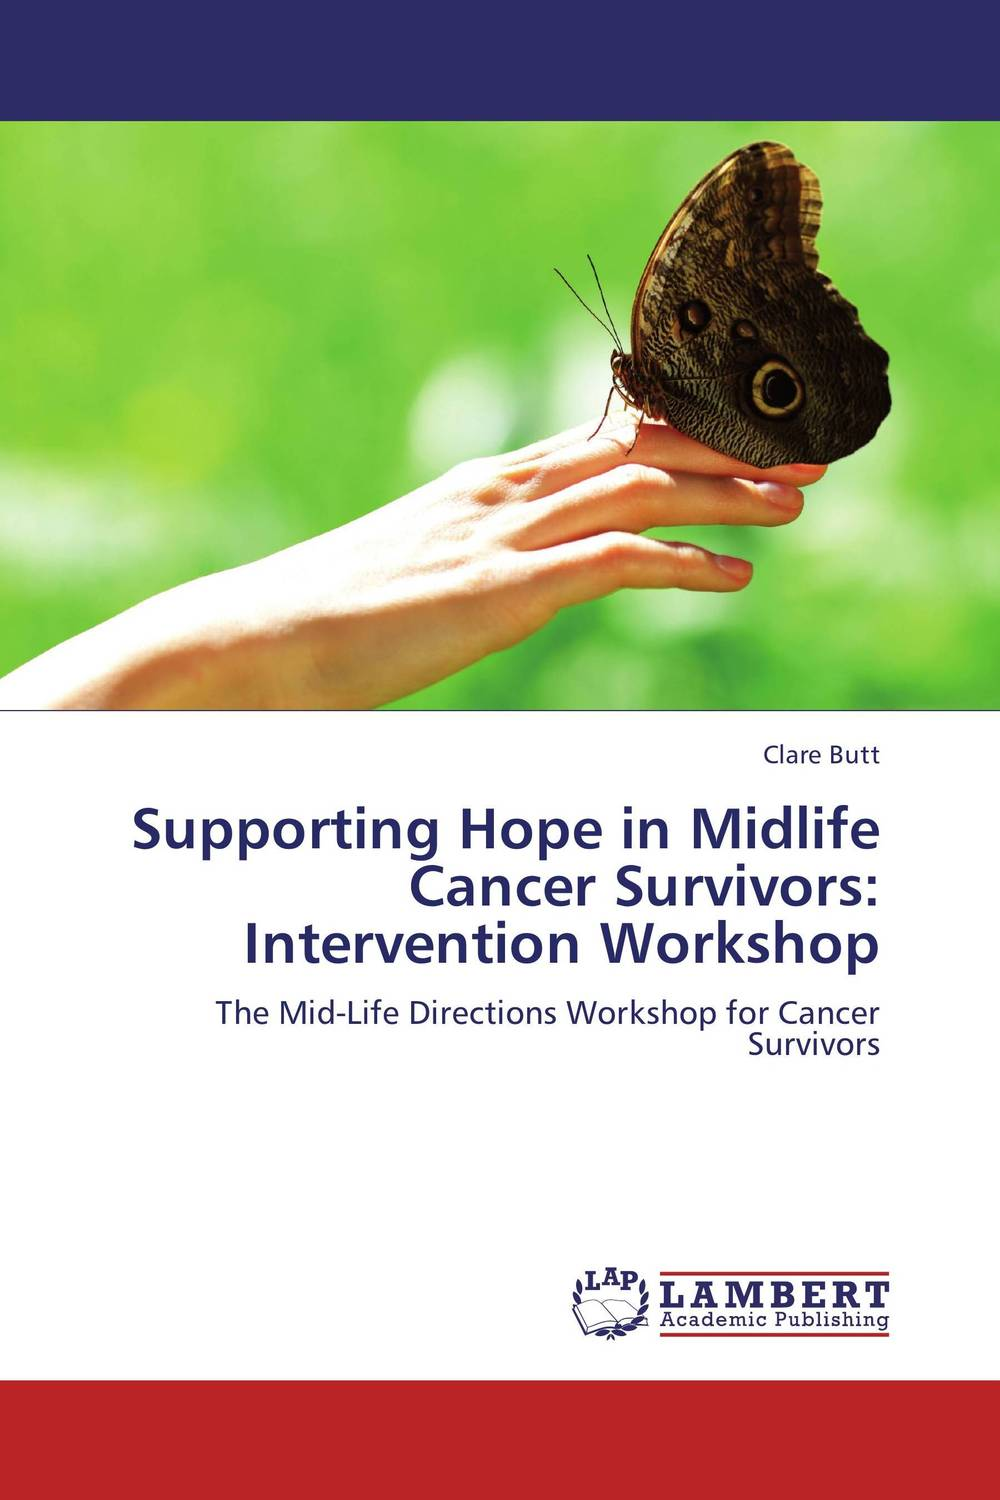 Supporting Hope in Midlife Cancer Survivors: Intervention Workshop choices in breast cancer treatment – medical specialists and cancer survivors tell you what you need to know